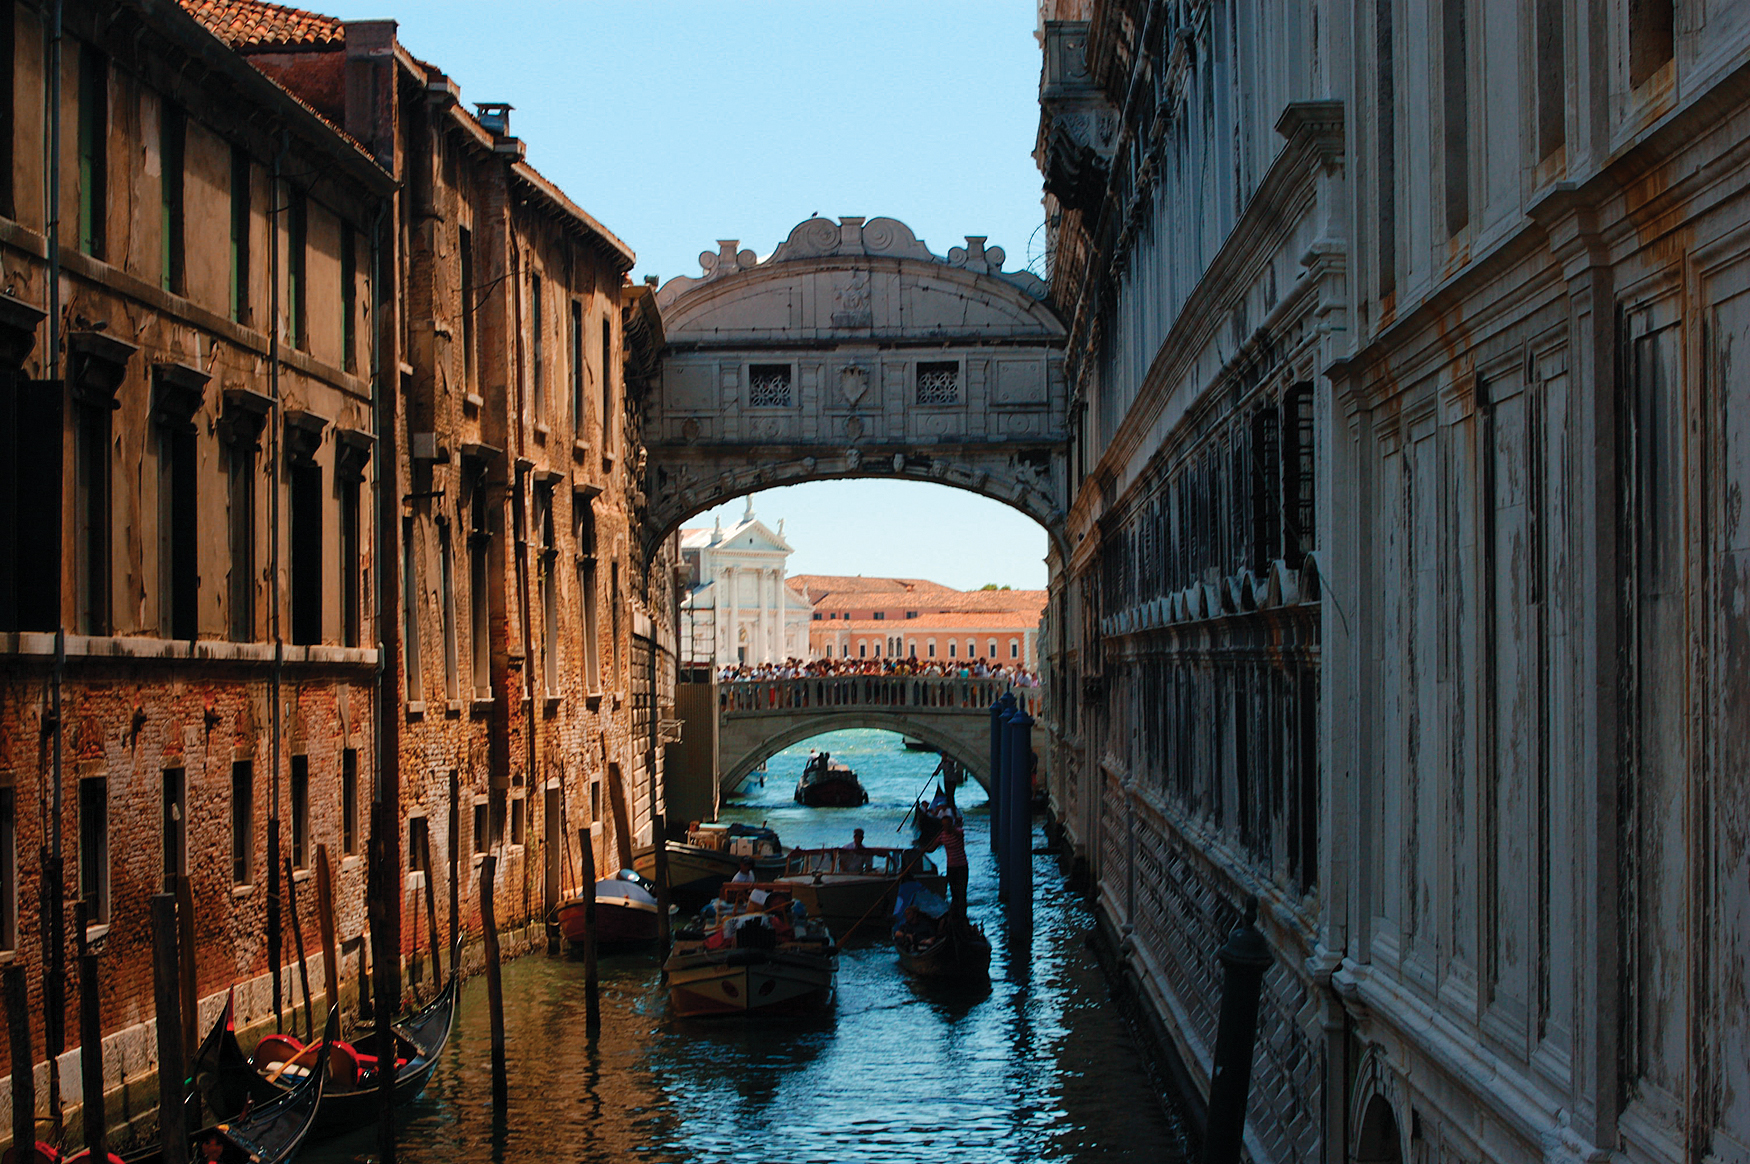 ficheiro bridge of sighs summer wikip dia a enciclop dia livre. Black Bedroom Furniture Sets. Home Design Ideas